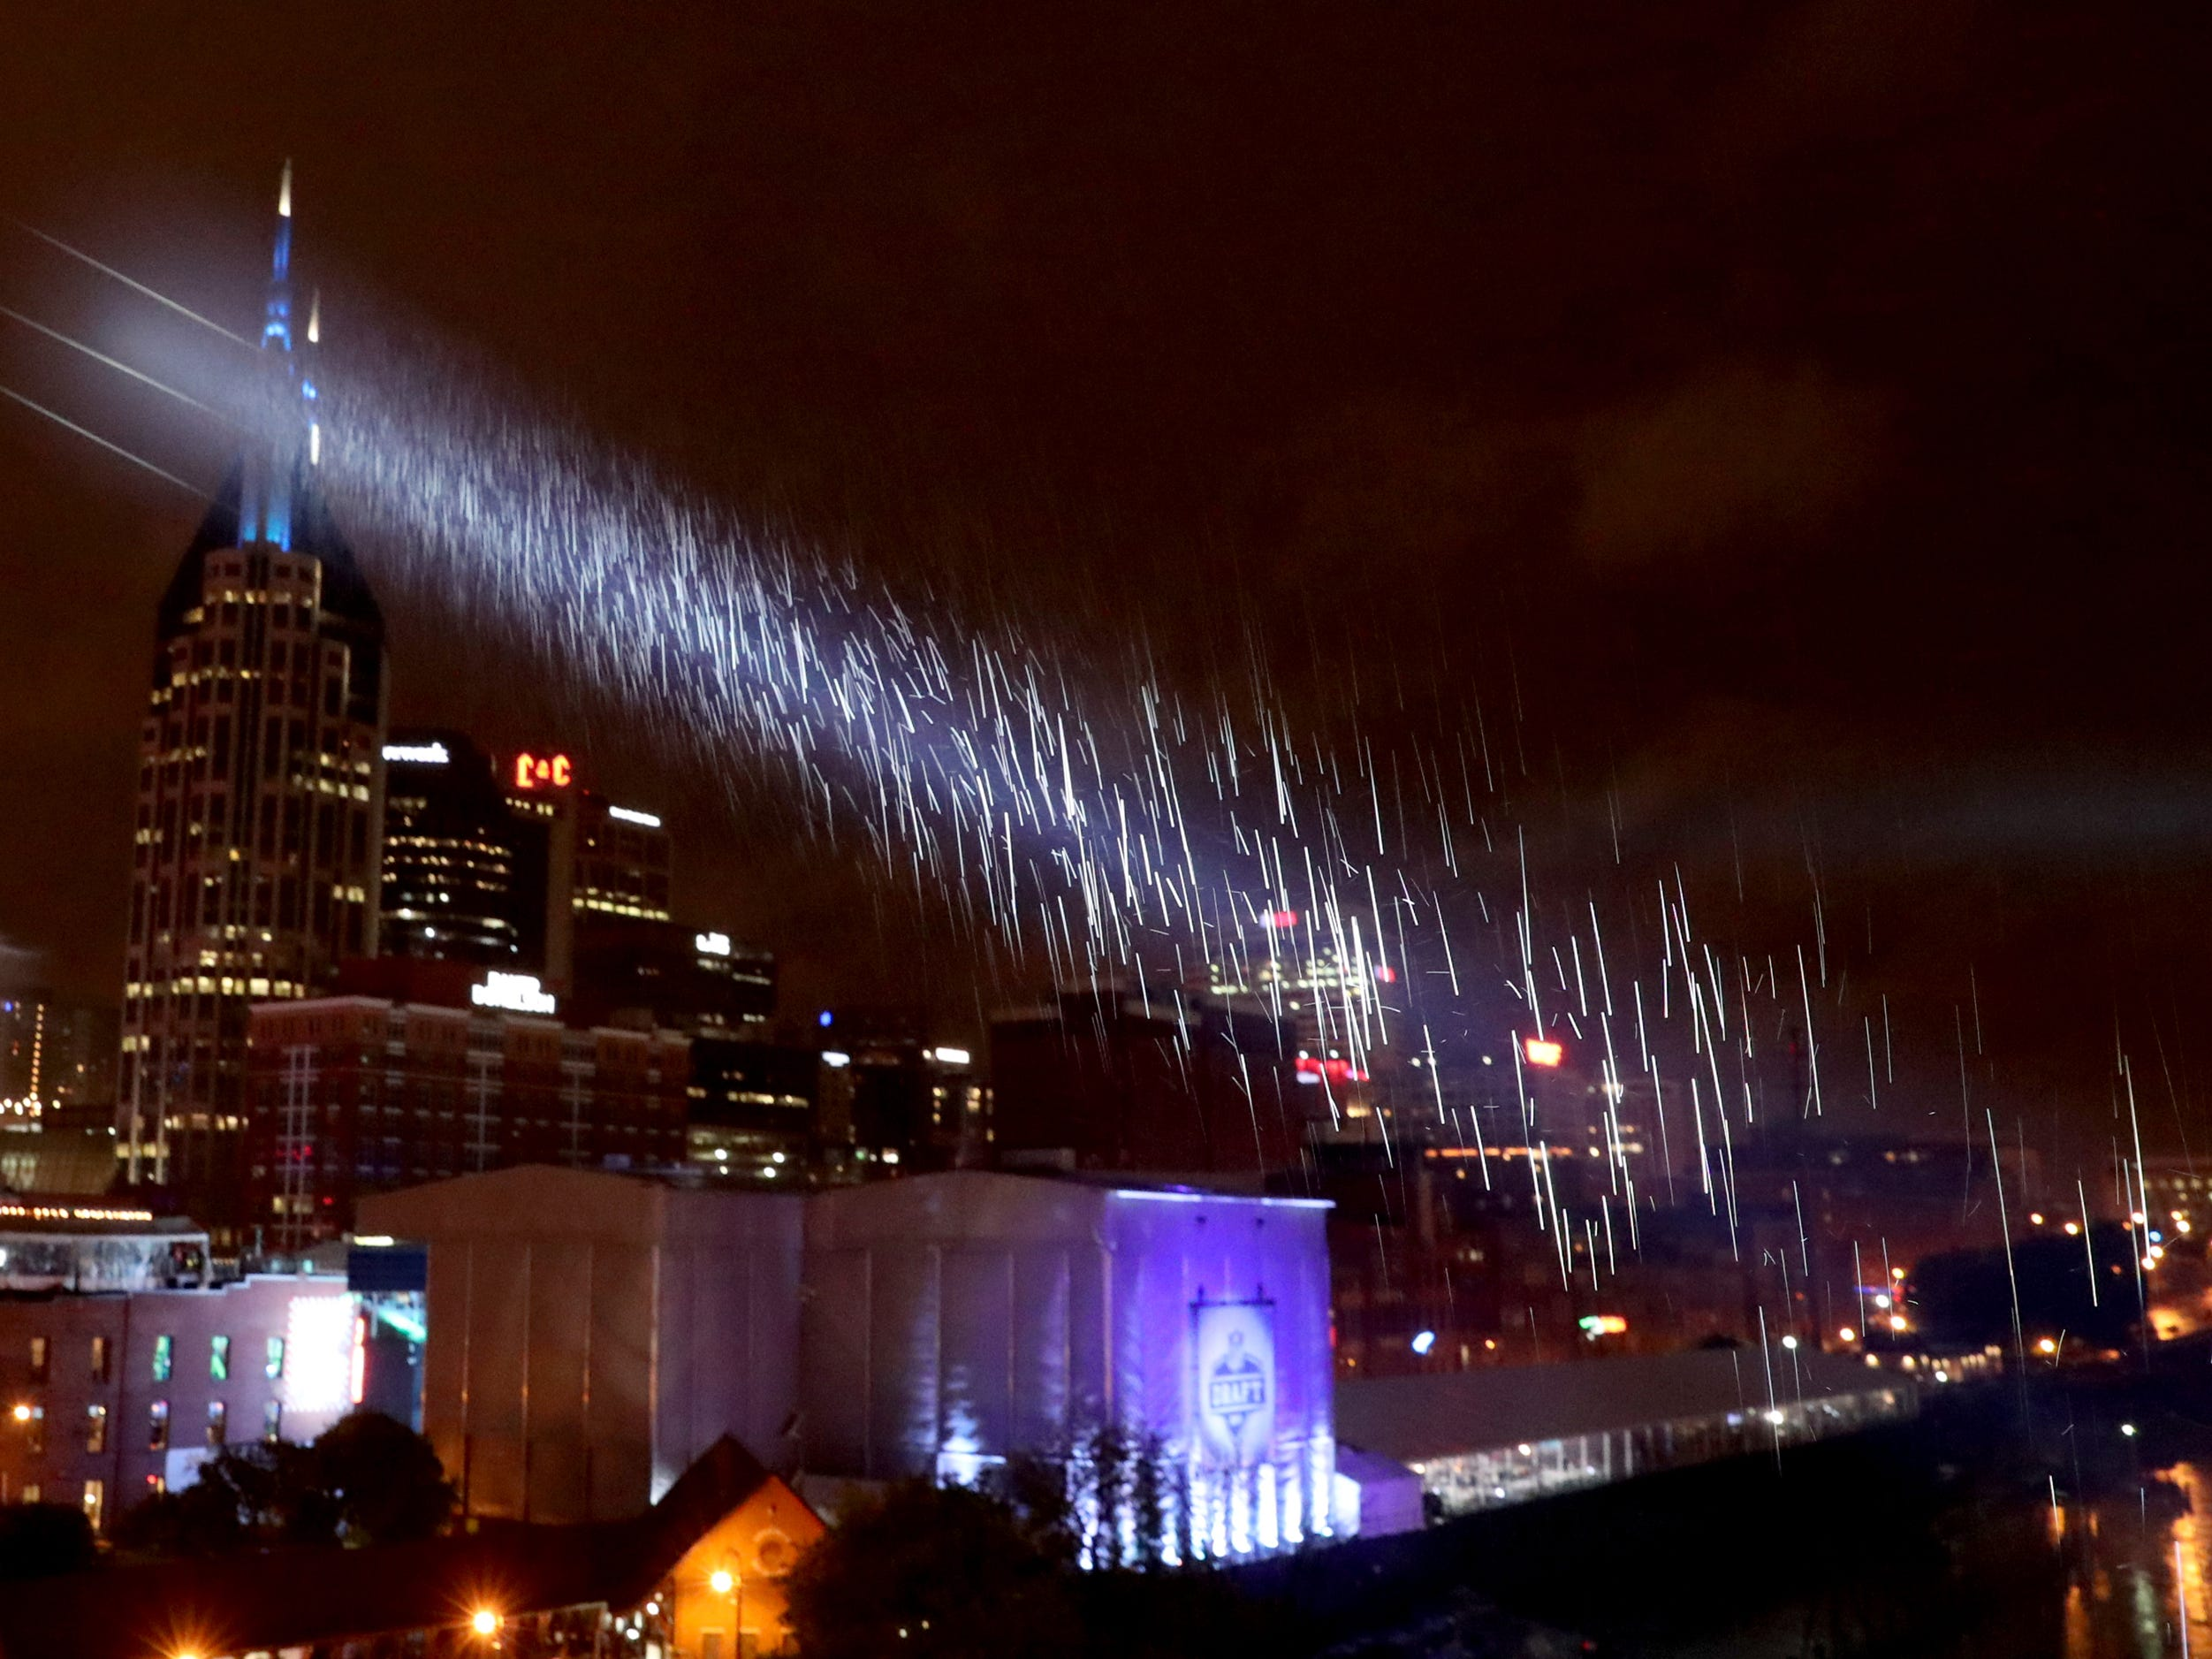 Light rain continued to fall on and off throughout the night during the first night of the NFL Draft on Thursday, April 25, 2019, in Nashville, Tennessee.